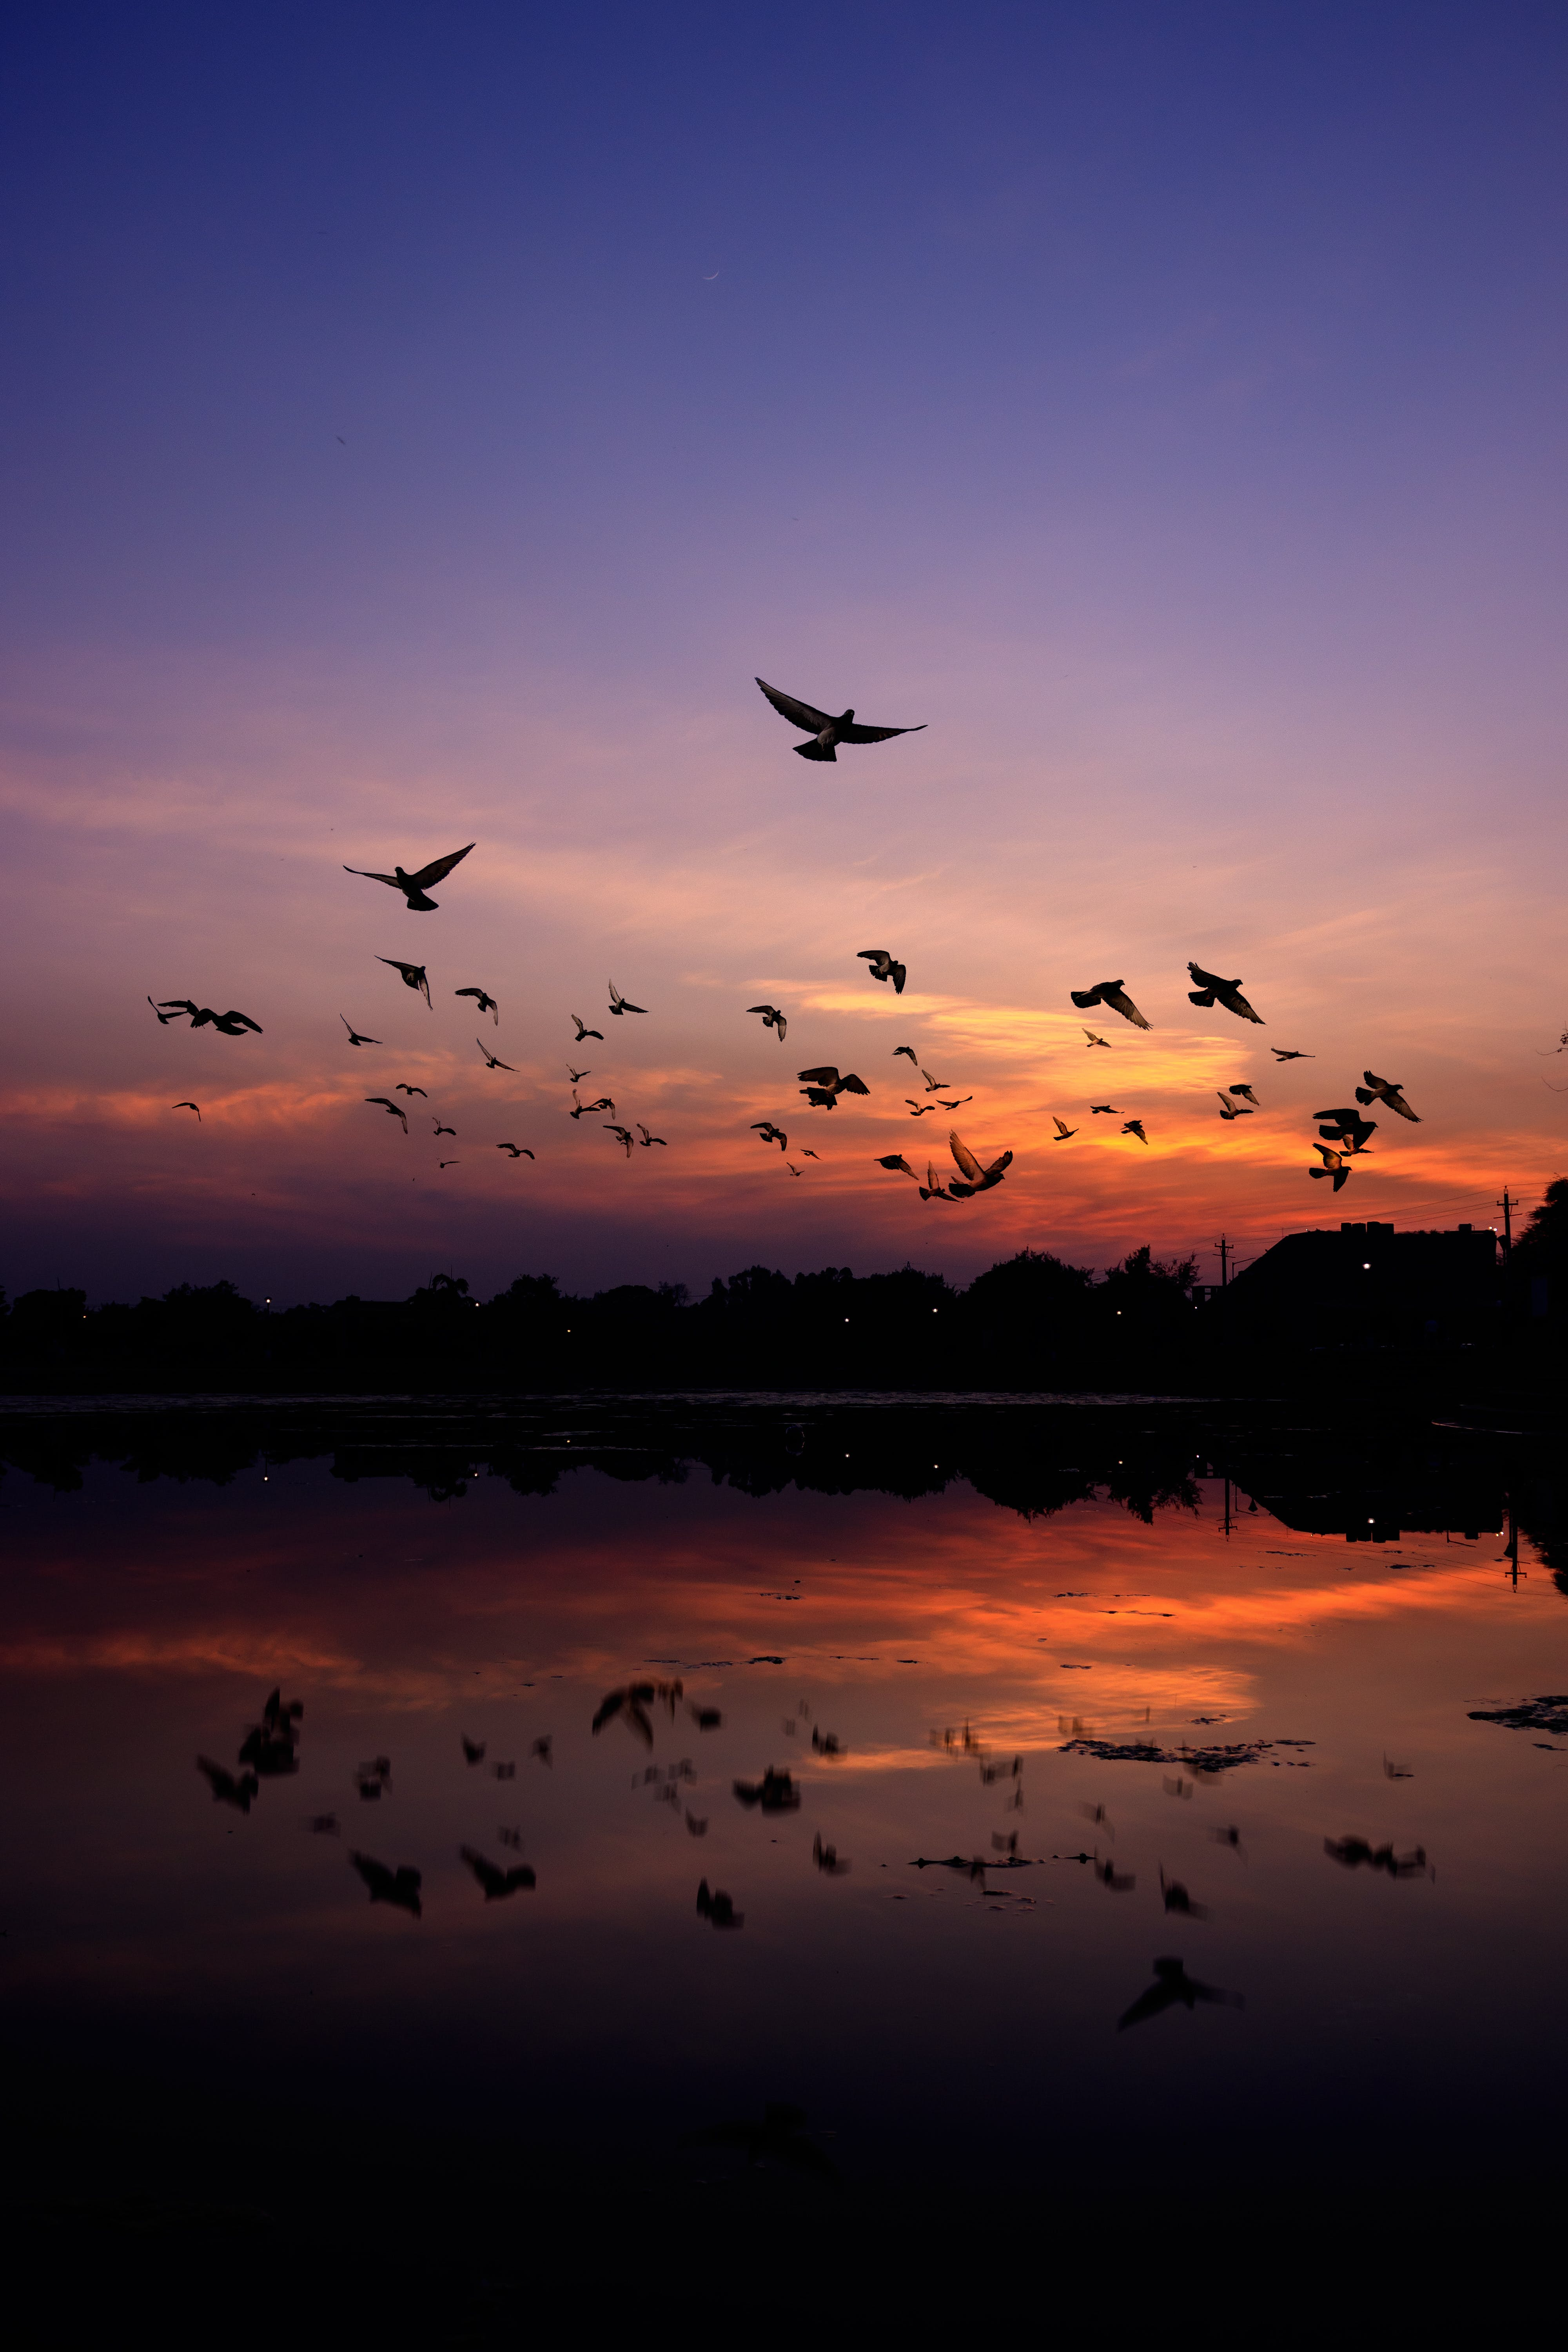 Silhouette of Mountain and Birds